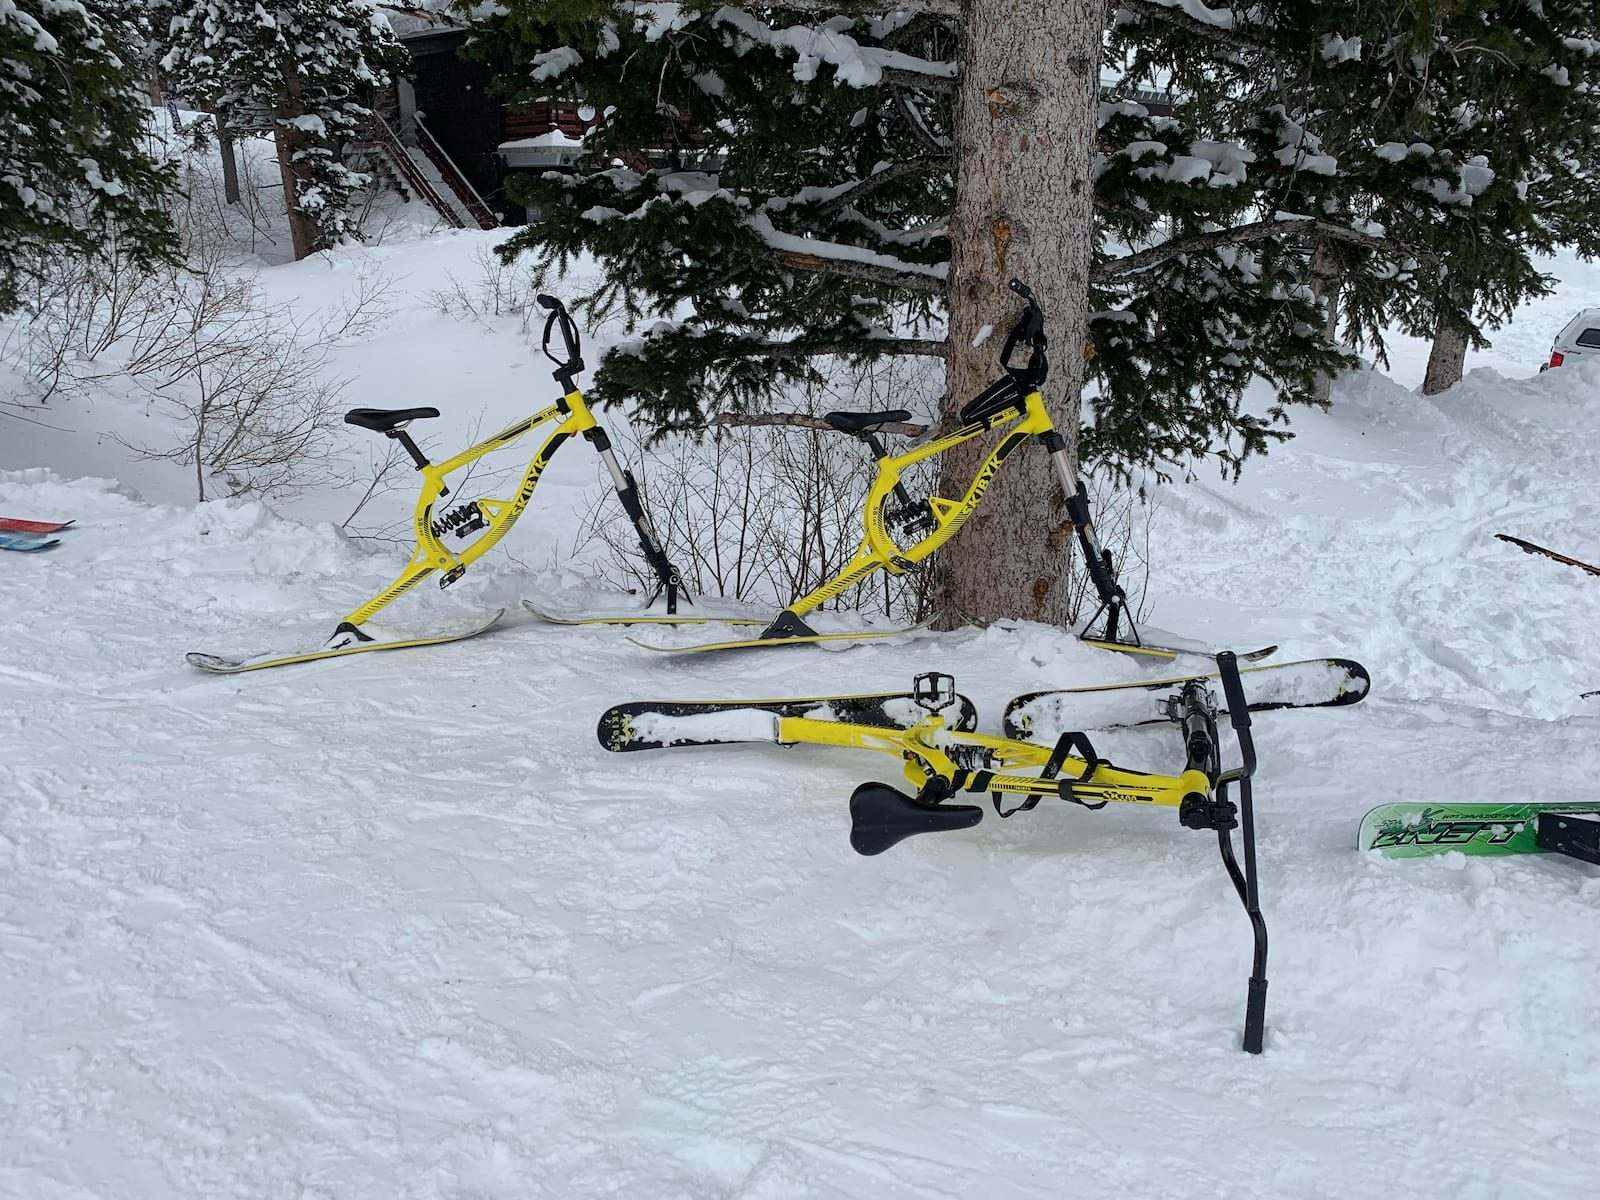 ski bike utah snow singletrack